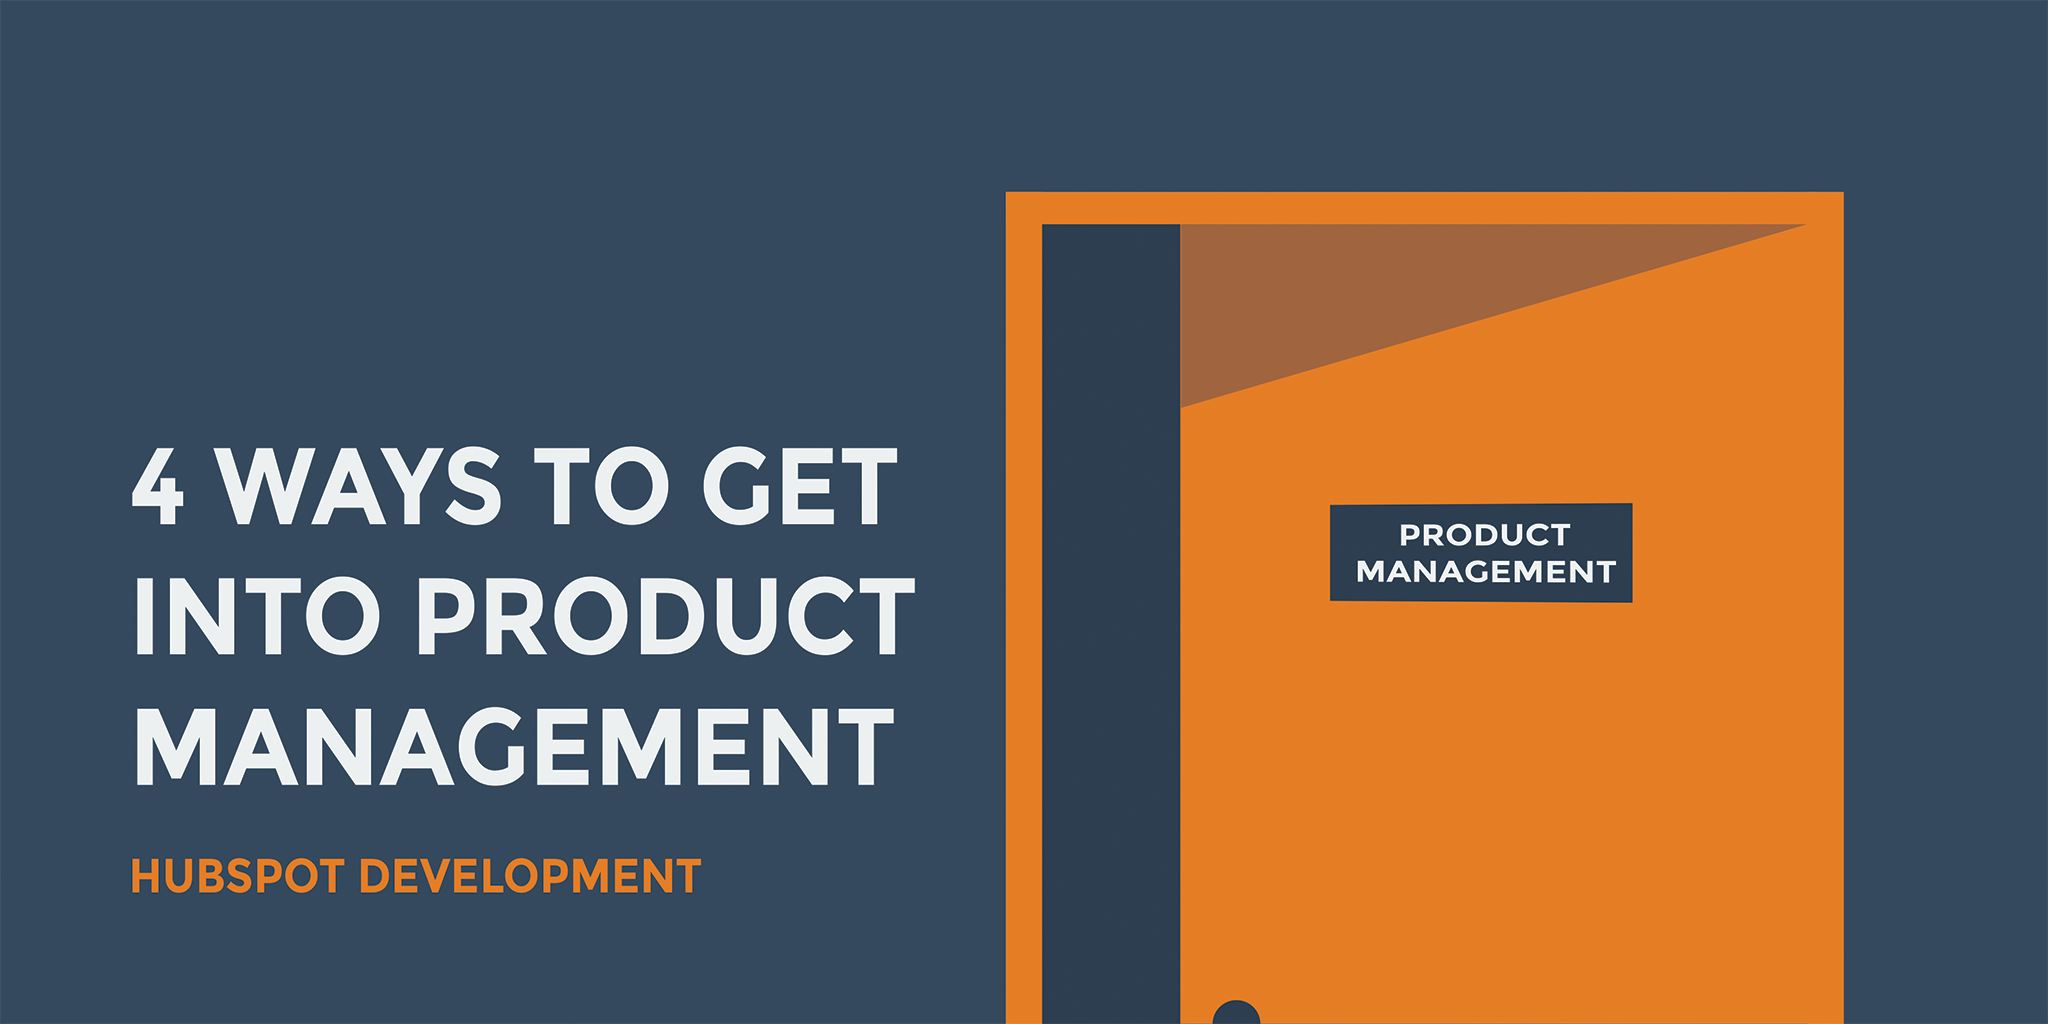 4 ways to get into product management